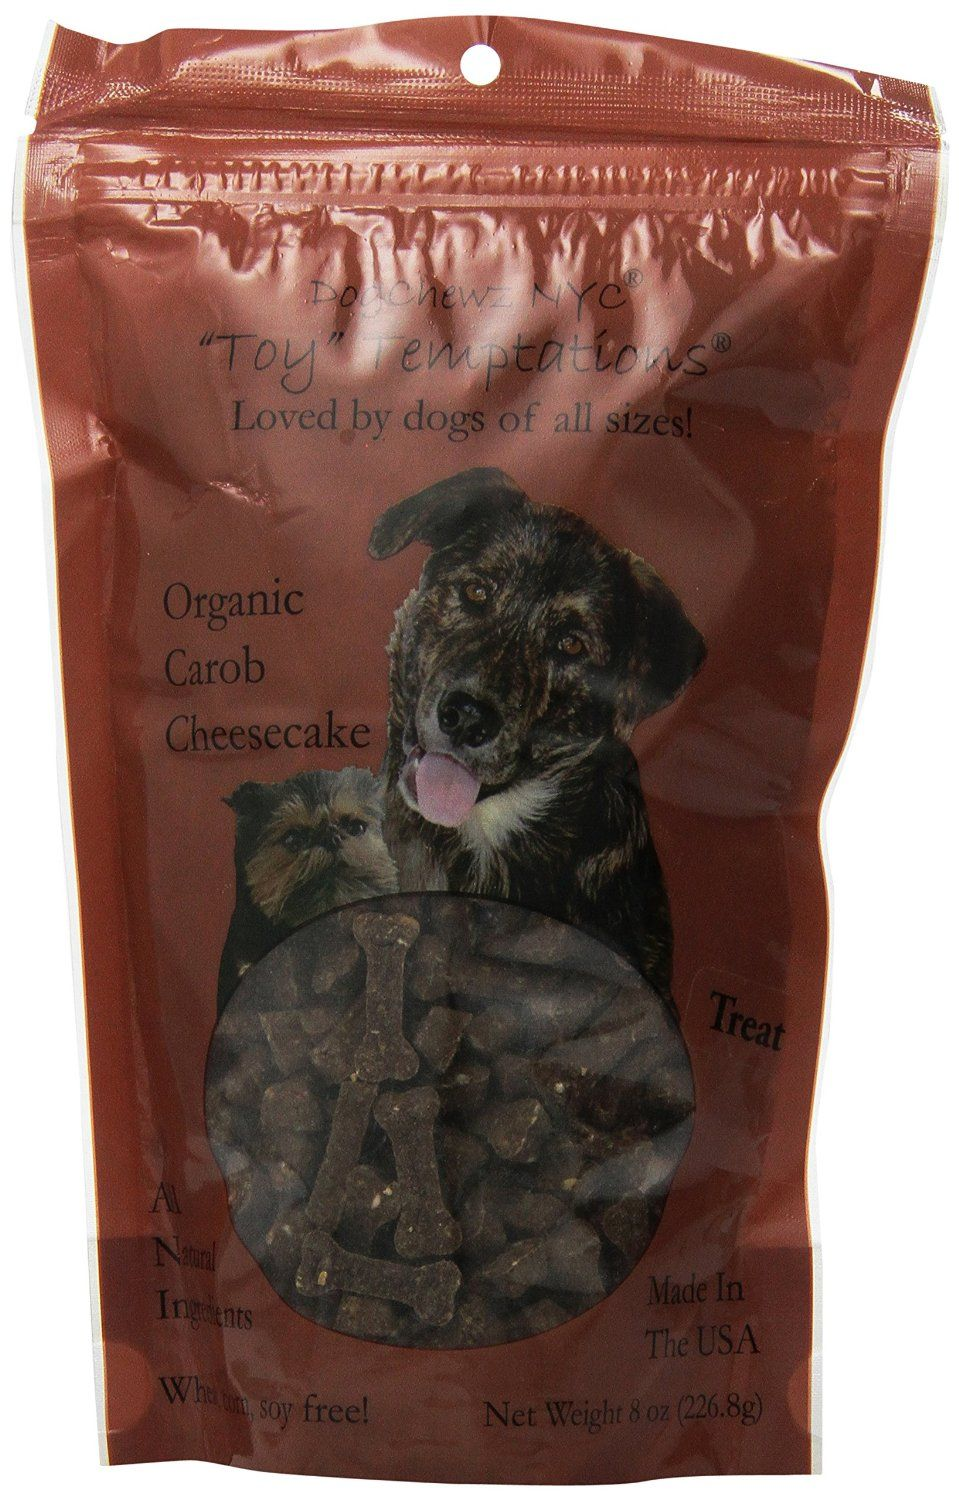 DogChewz NYC Toy Temptations All Natural Dog